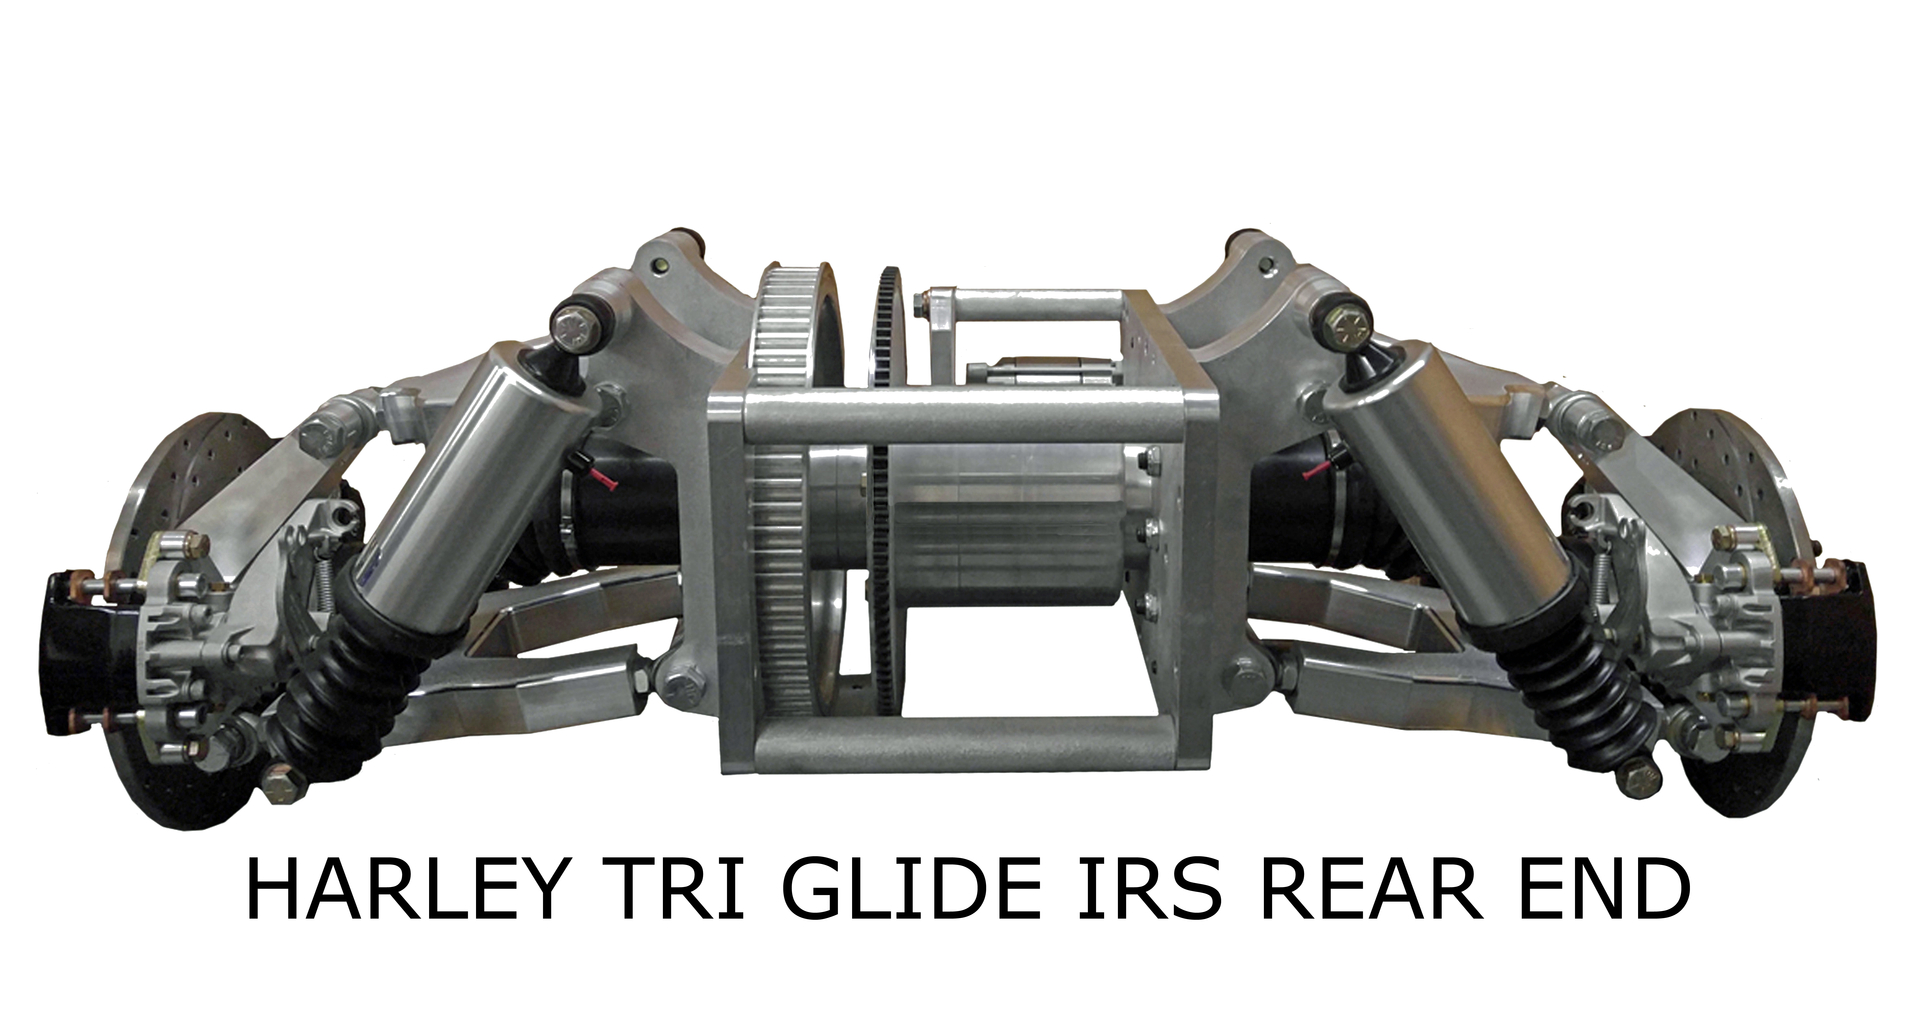 Trike Kits For Harley-davidson Trike Conversion- Irs Trike